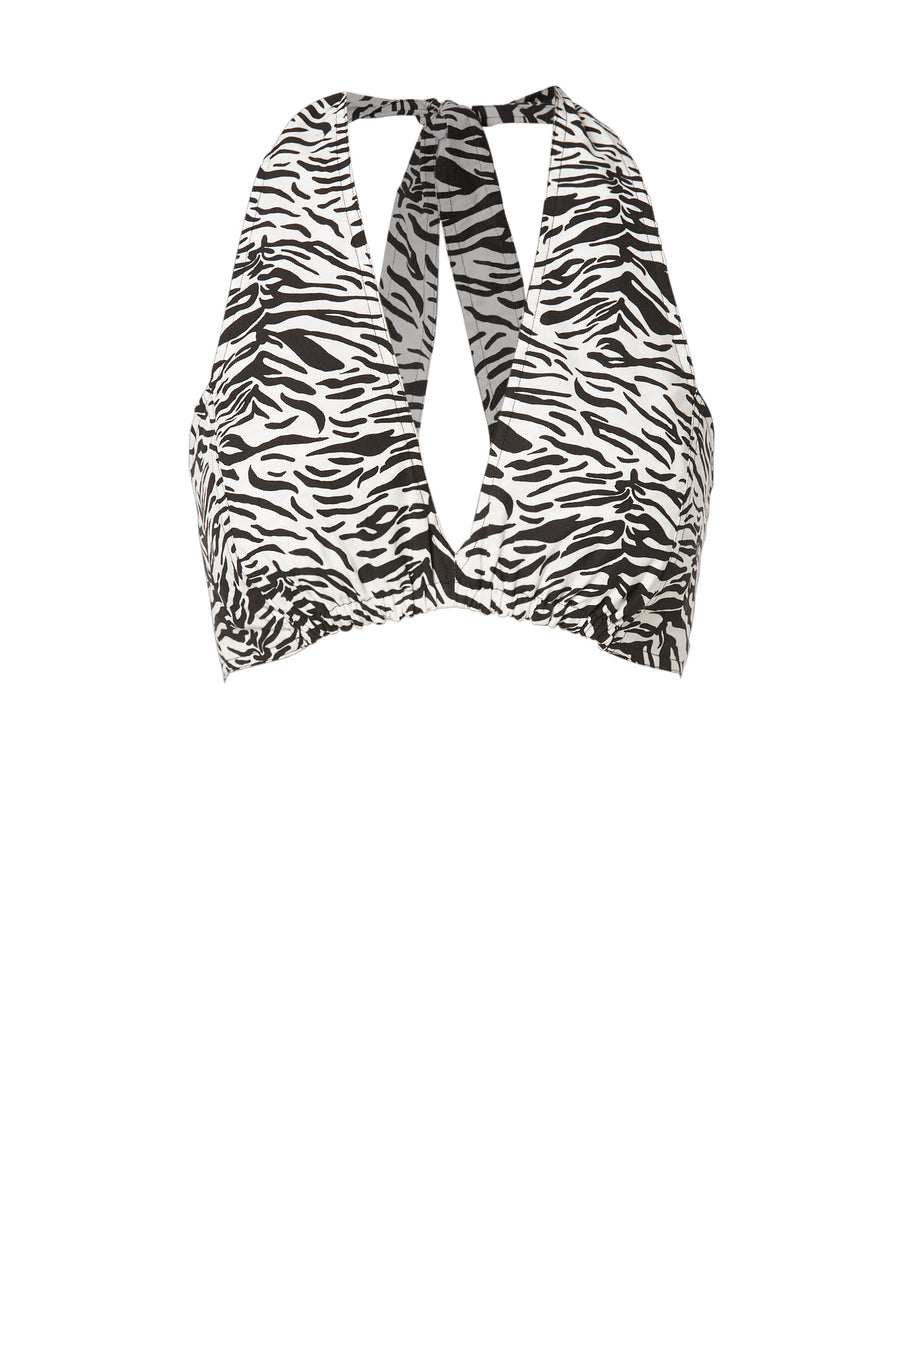 ANIMAL PRINT HALTER TOP BLACK/WHITE